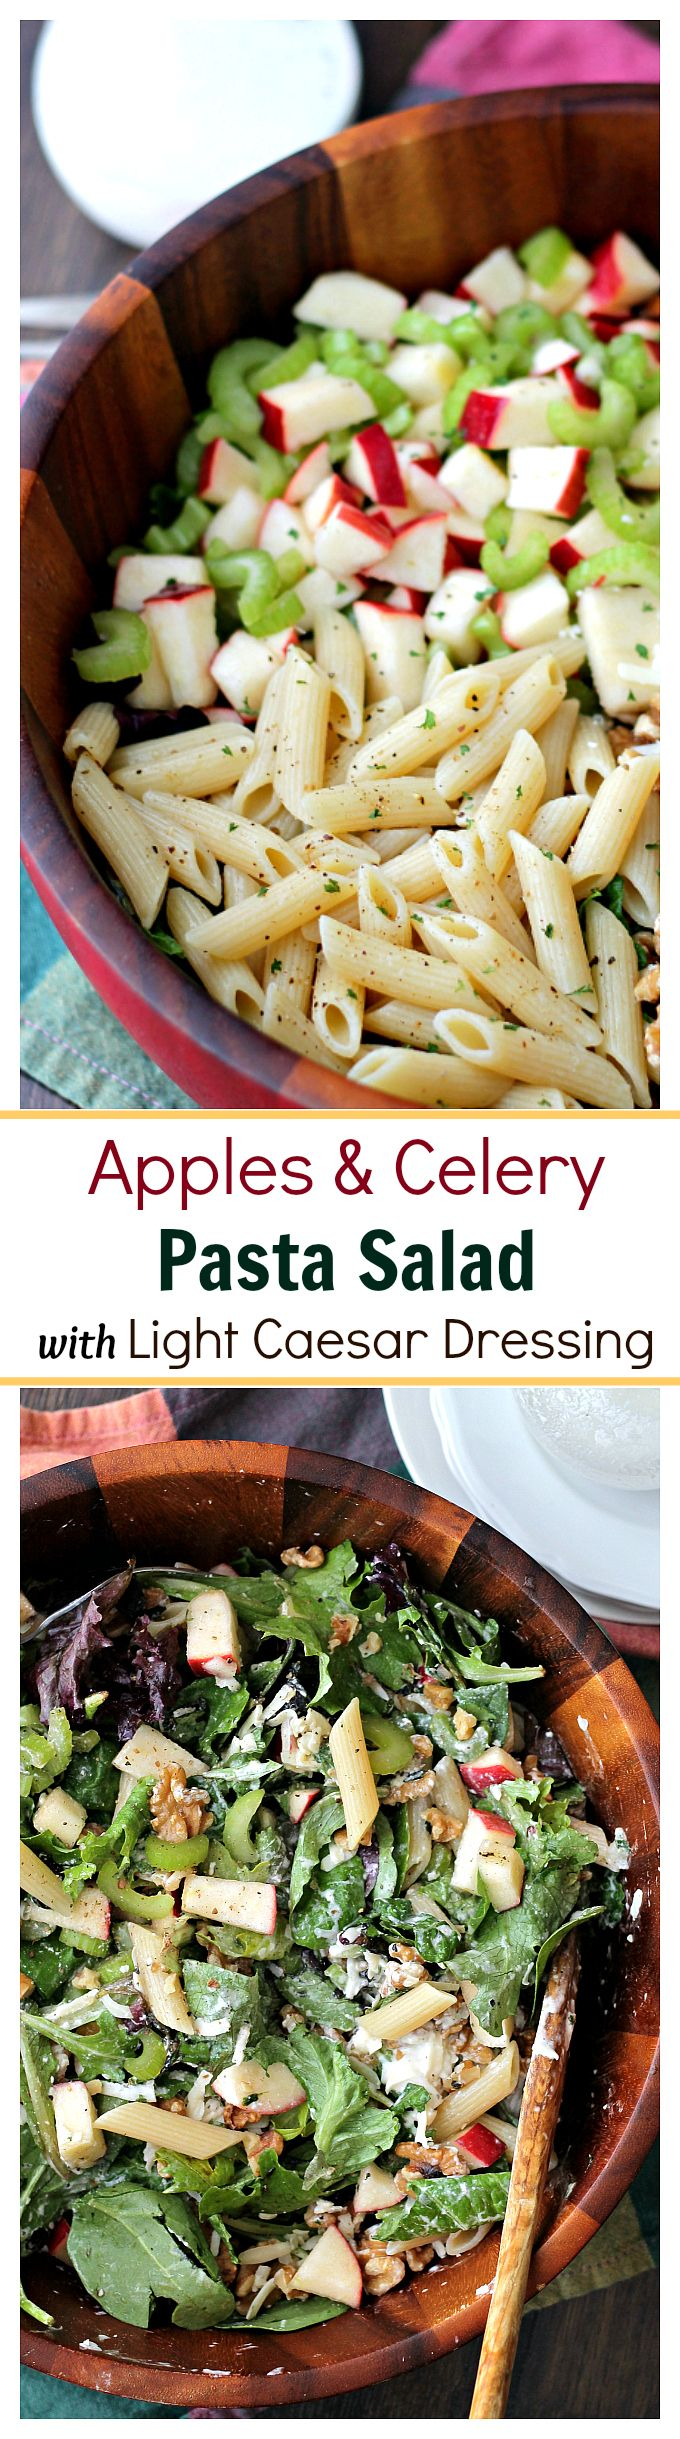 Apples and Celery Pasta Salad with Light Caesar Dressing - Penne Pasta tossed with Gala apples, celery, walnuts and a lightened-up, homemade Caesar Dressing. The textures and flavors make this salad absolutely irresistible!